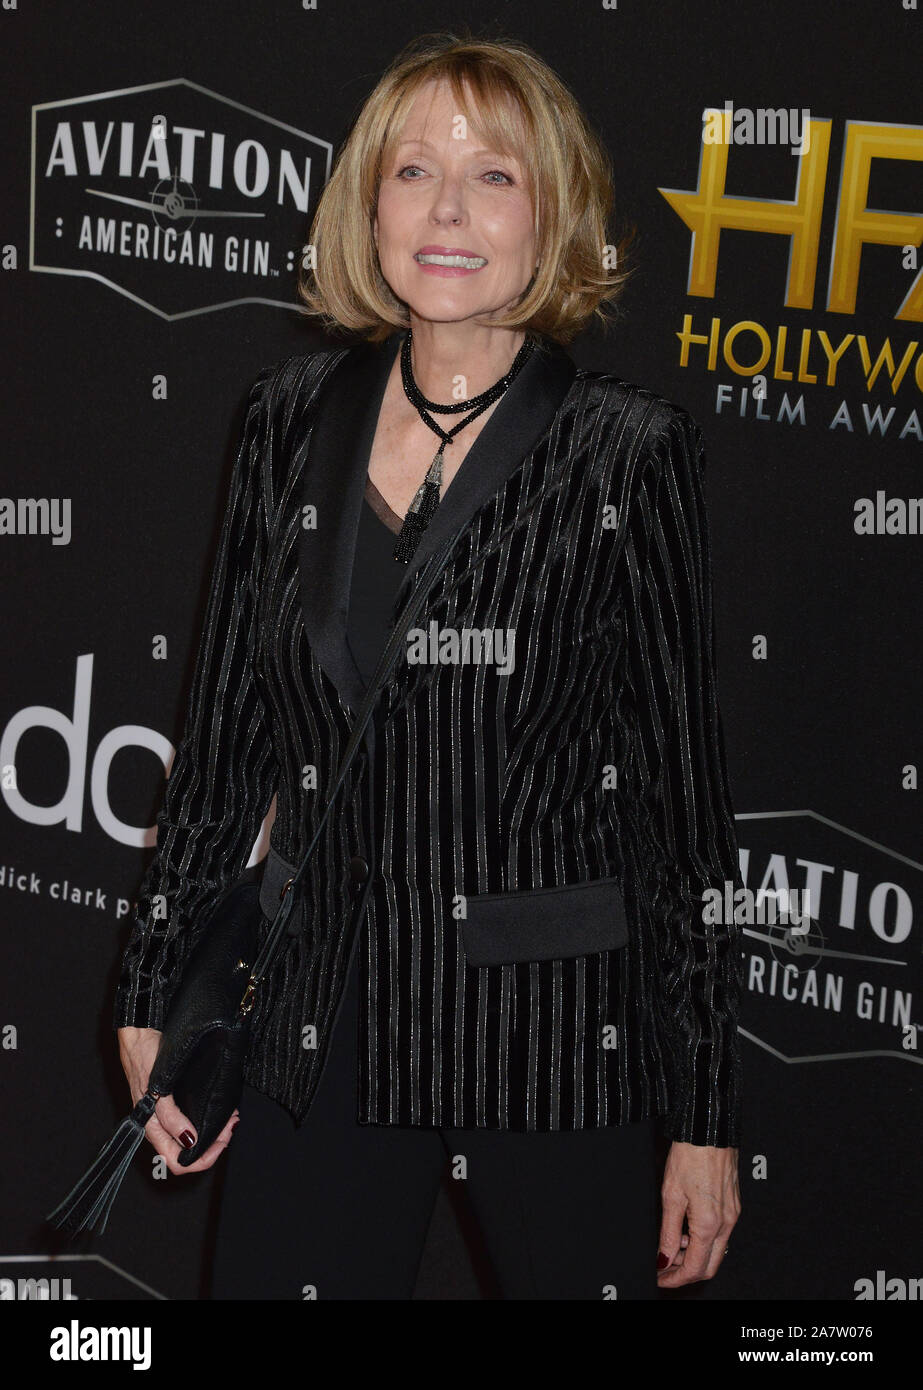 Los Angeles Usa 04th Nov 2019 Susan Blakely 126 Arrives At The 23rd Annual Hollywood Film Awards At The Beverly Hilton Hotel On November 03 2019 In Beverly Hills California Credit Tsuni Usa Alamy